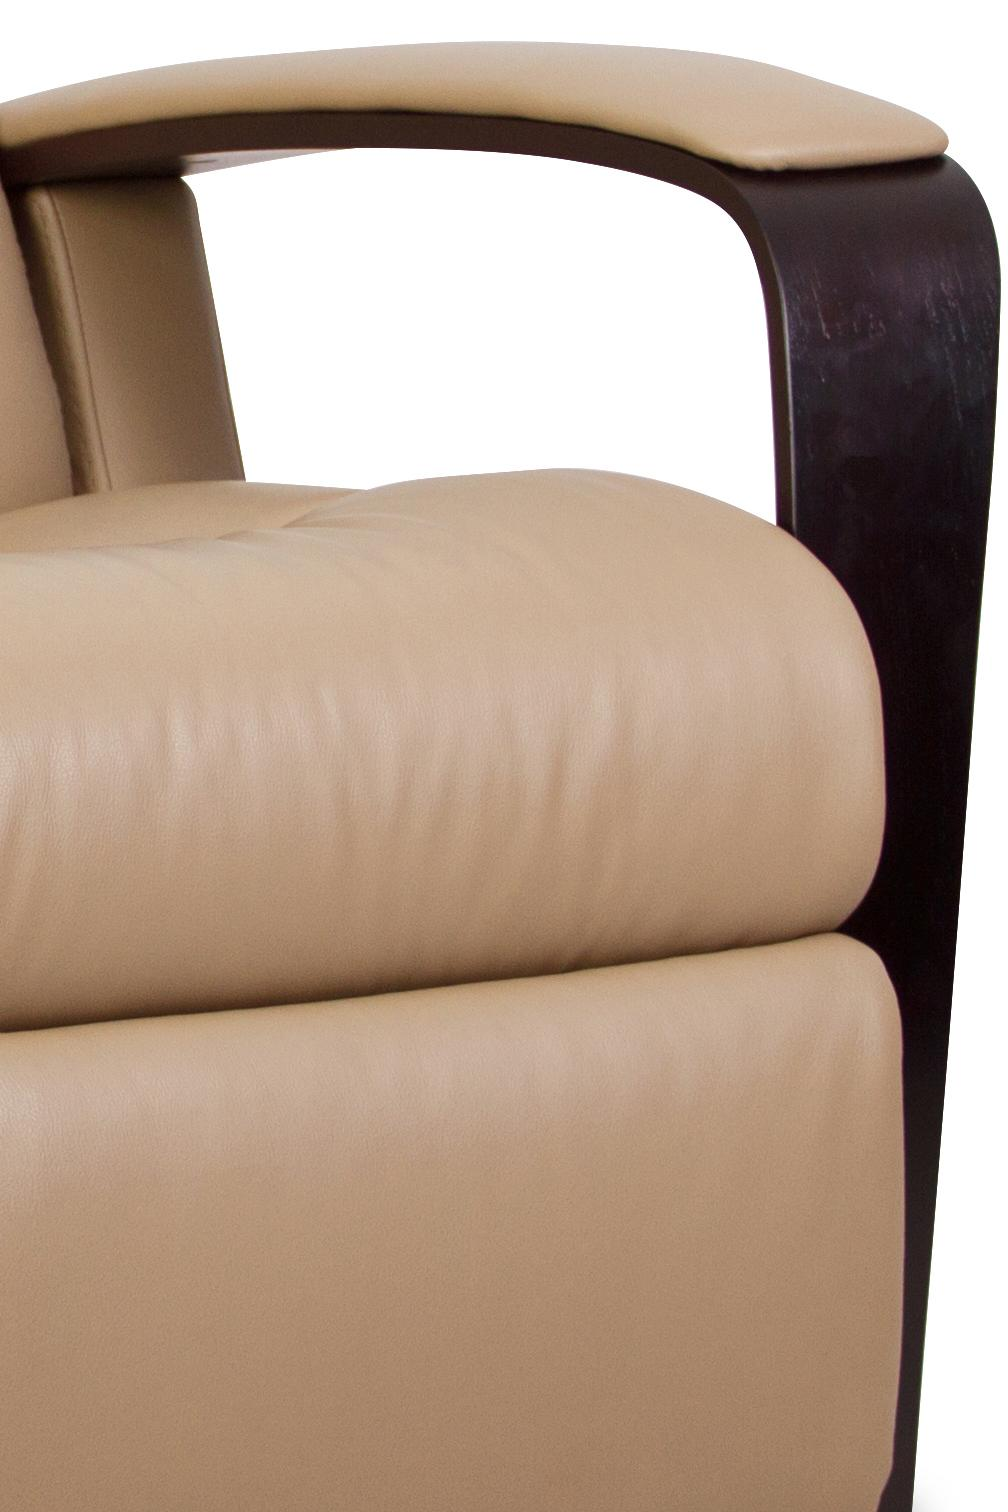 Recliners (01542) by IMG Norway - Sprintz Furniture - IMG Norway Recliners Dealer & Recliners (01542) by IMG Norway - Sprintz Furniture - IMG Norway ... islam-shia.org